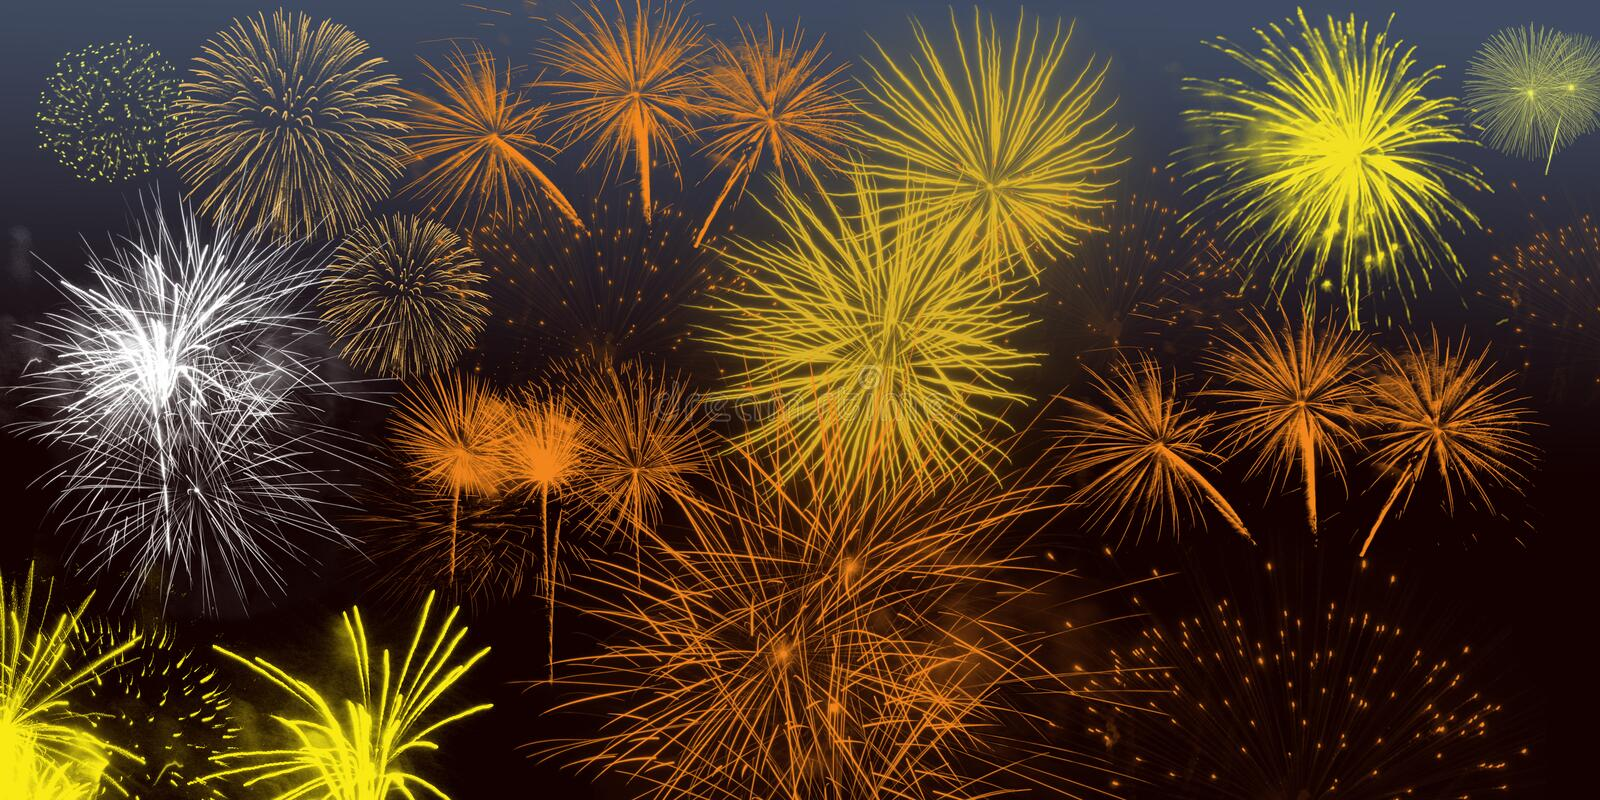 Festival Fireworks Background Wallpaper Poster Banner Graphics New Year Christmas Diwali stock photo